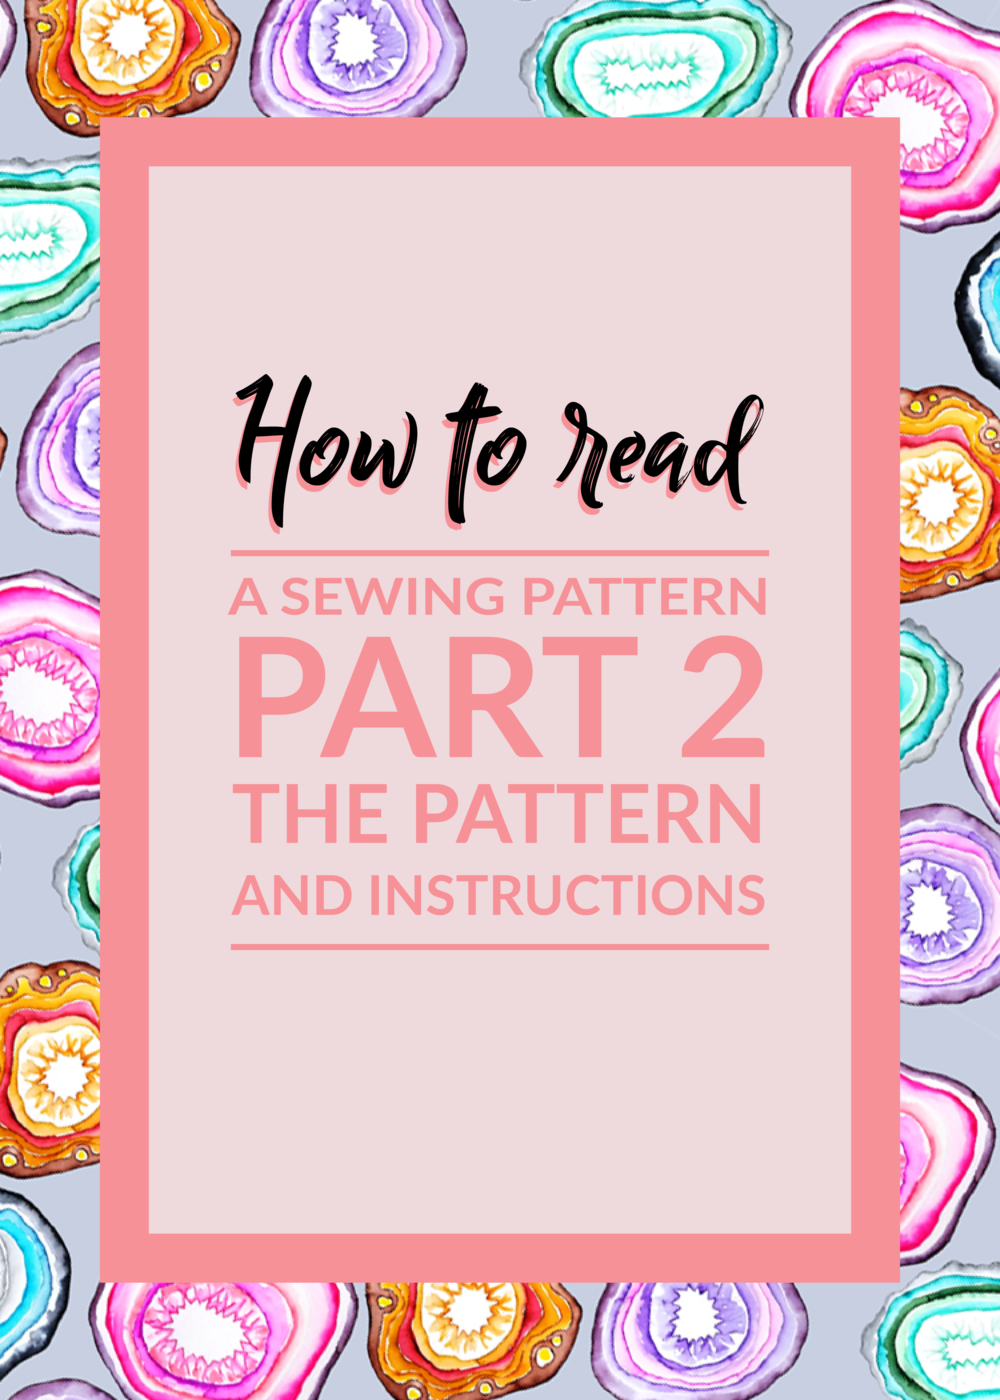 20170830_How to read a pattern pt 2.png